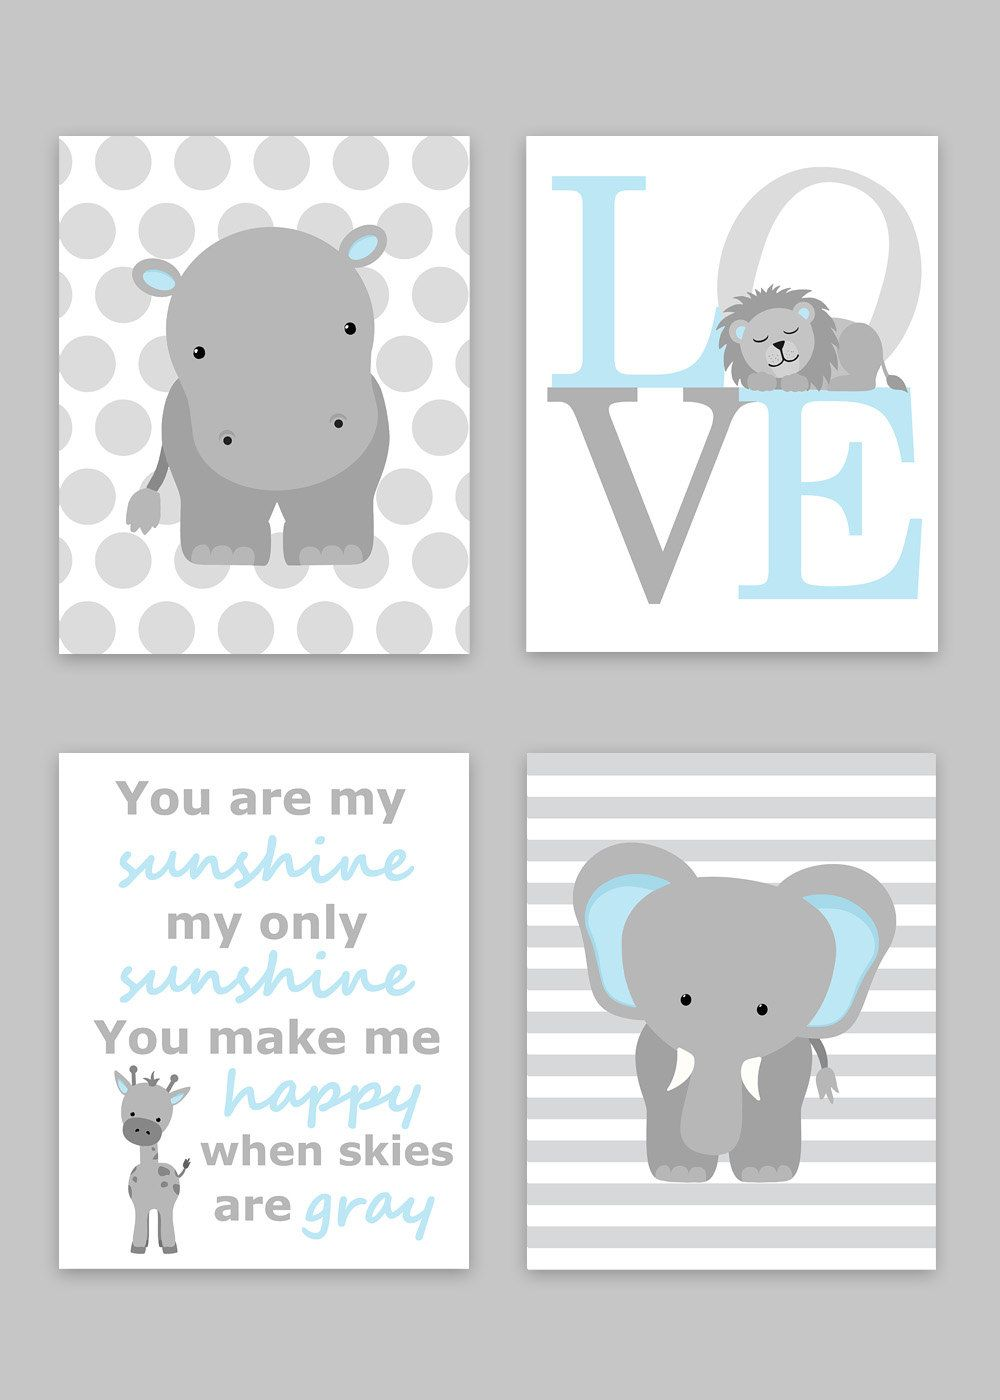 Elephant nursery wall art print mom baby dad by rizzleandrugee - Zoo Nursery Decor Elephant Nursery Zoo Baby Room Hippo Nursery Love You Are My Sunshine Jungle Decor Lion Giraffe Baby Boy Decor